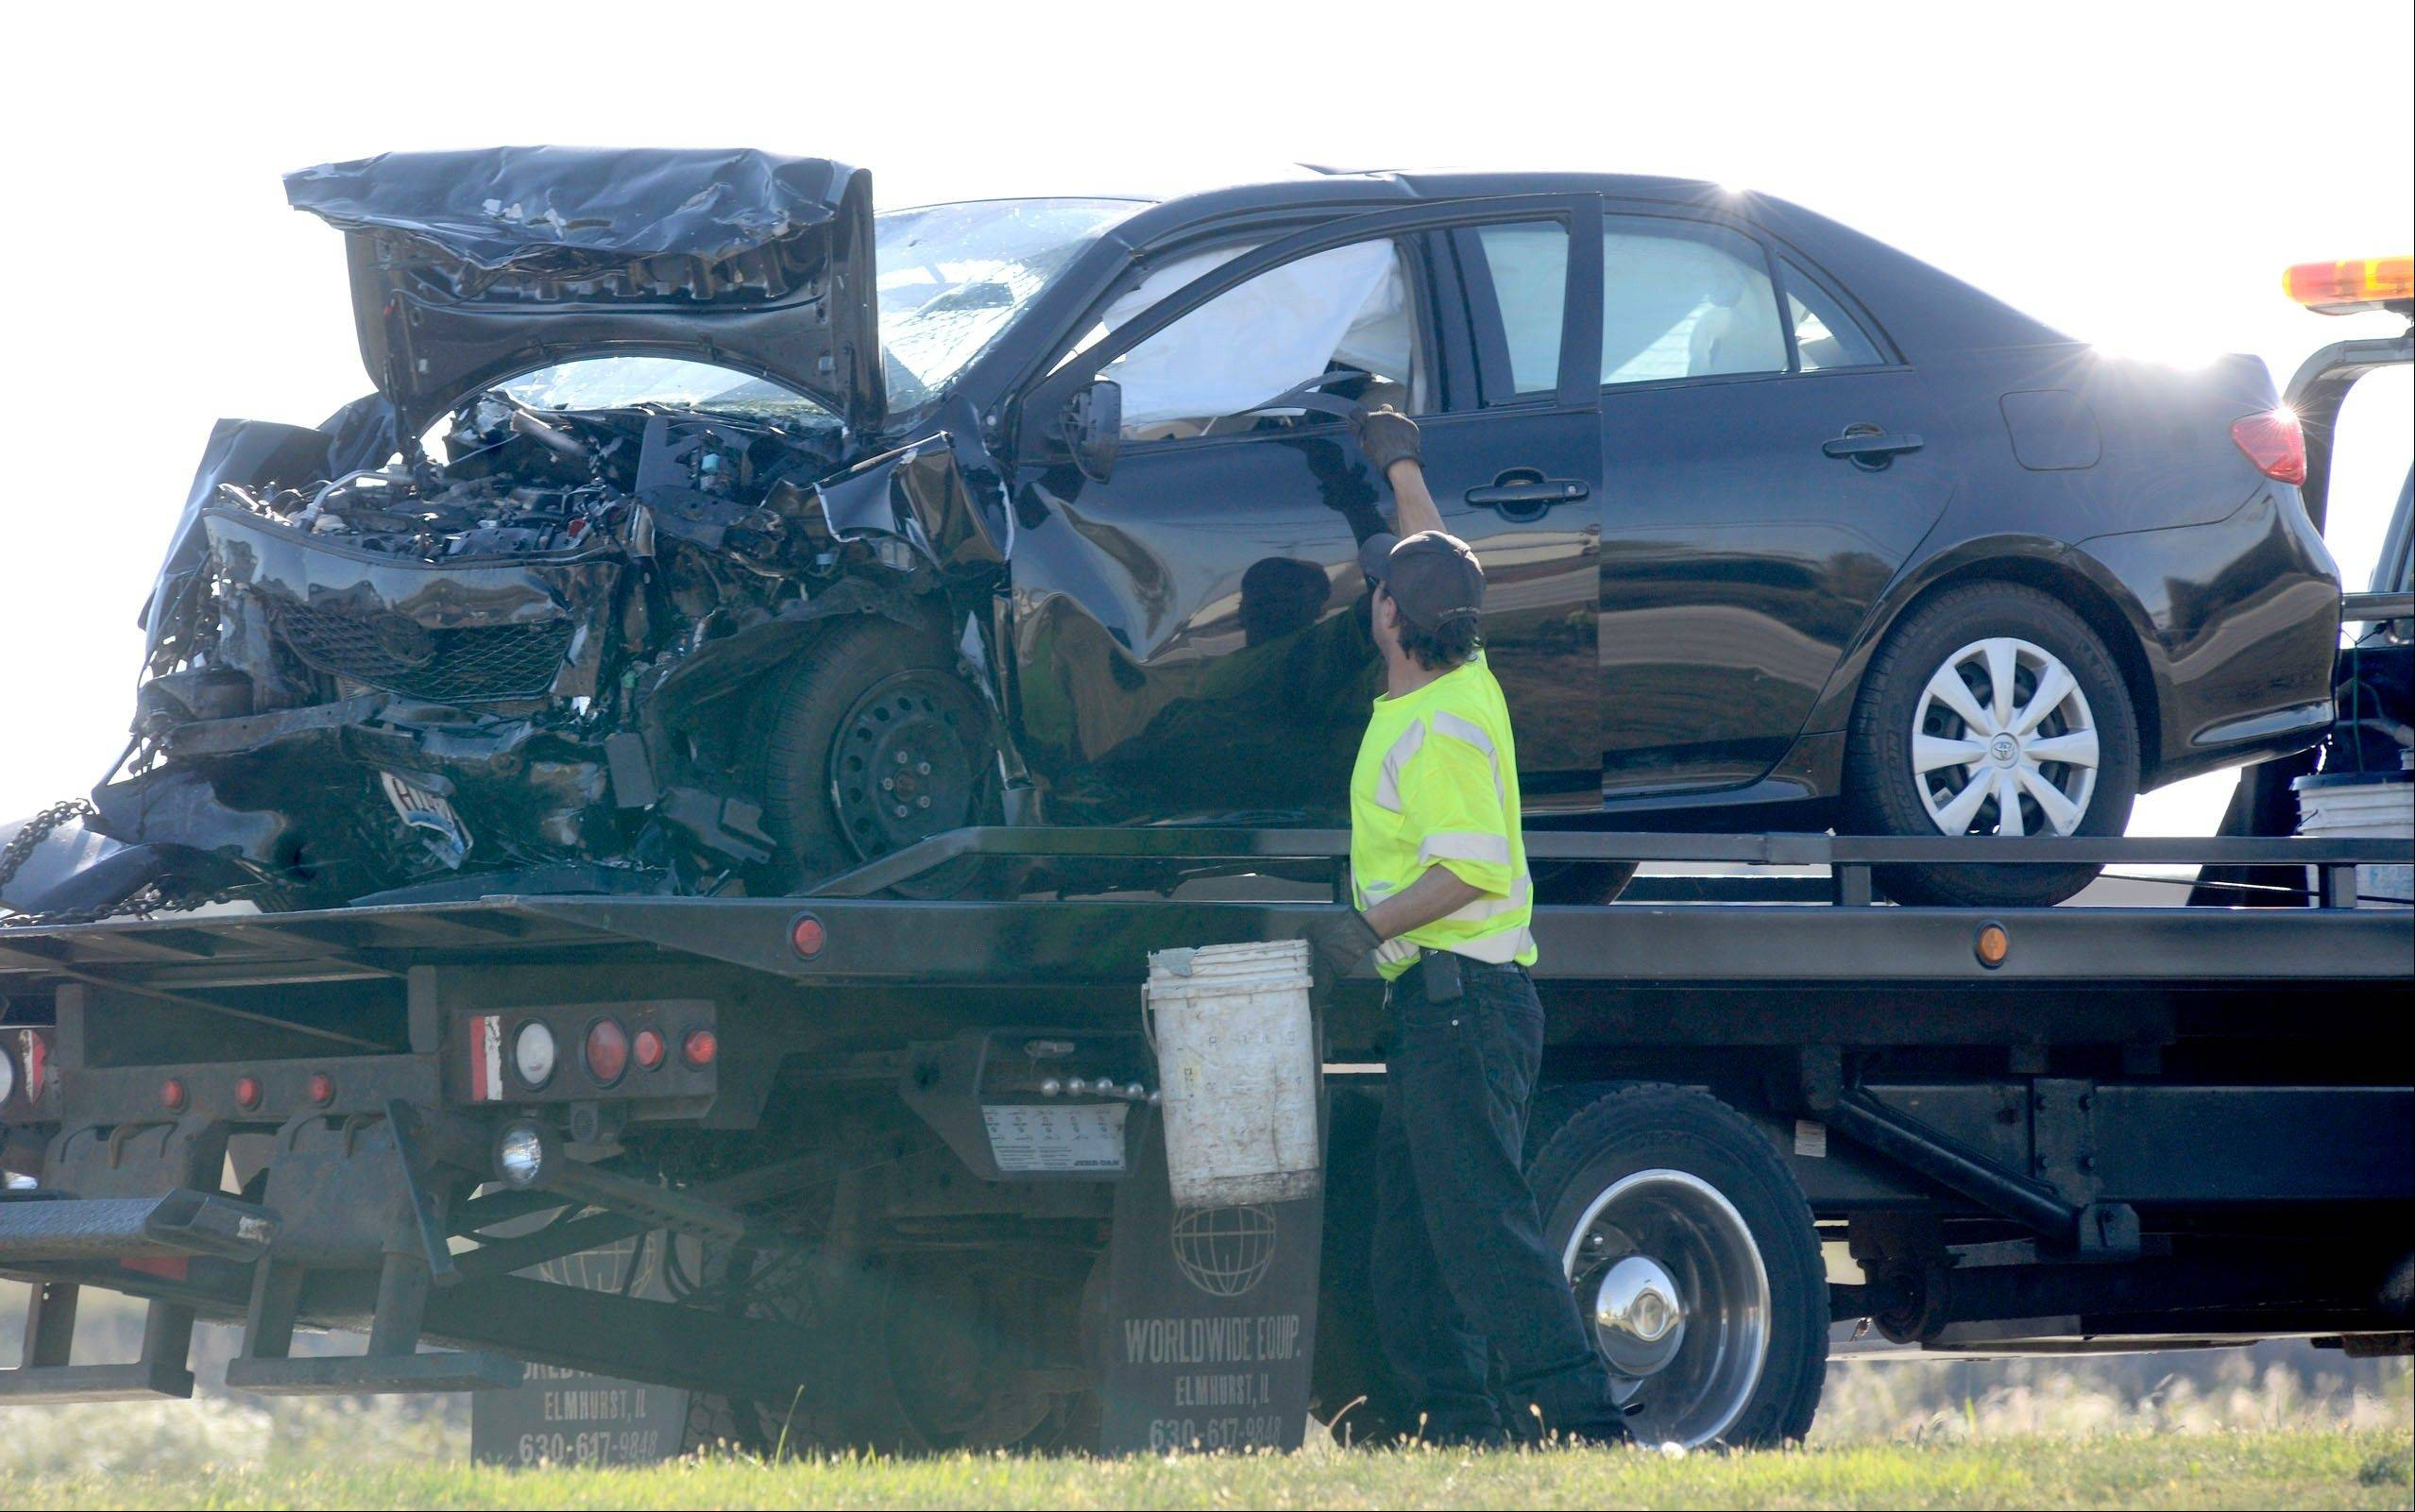 At least two cars were damaged in a head-on crash Wednesday afternoon in South Elgin near the intersection of McDonald and Randall roads.